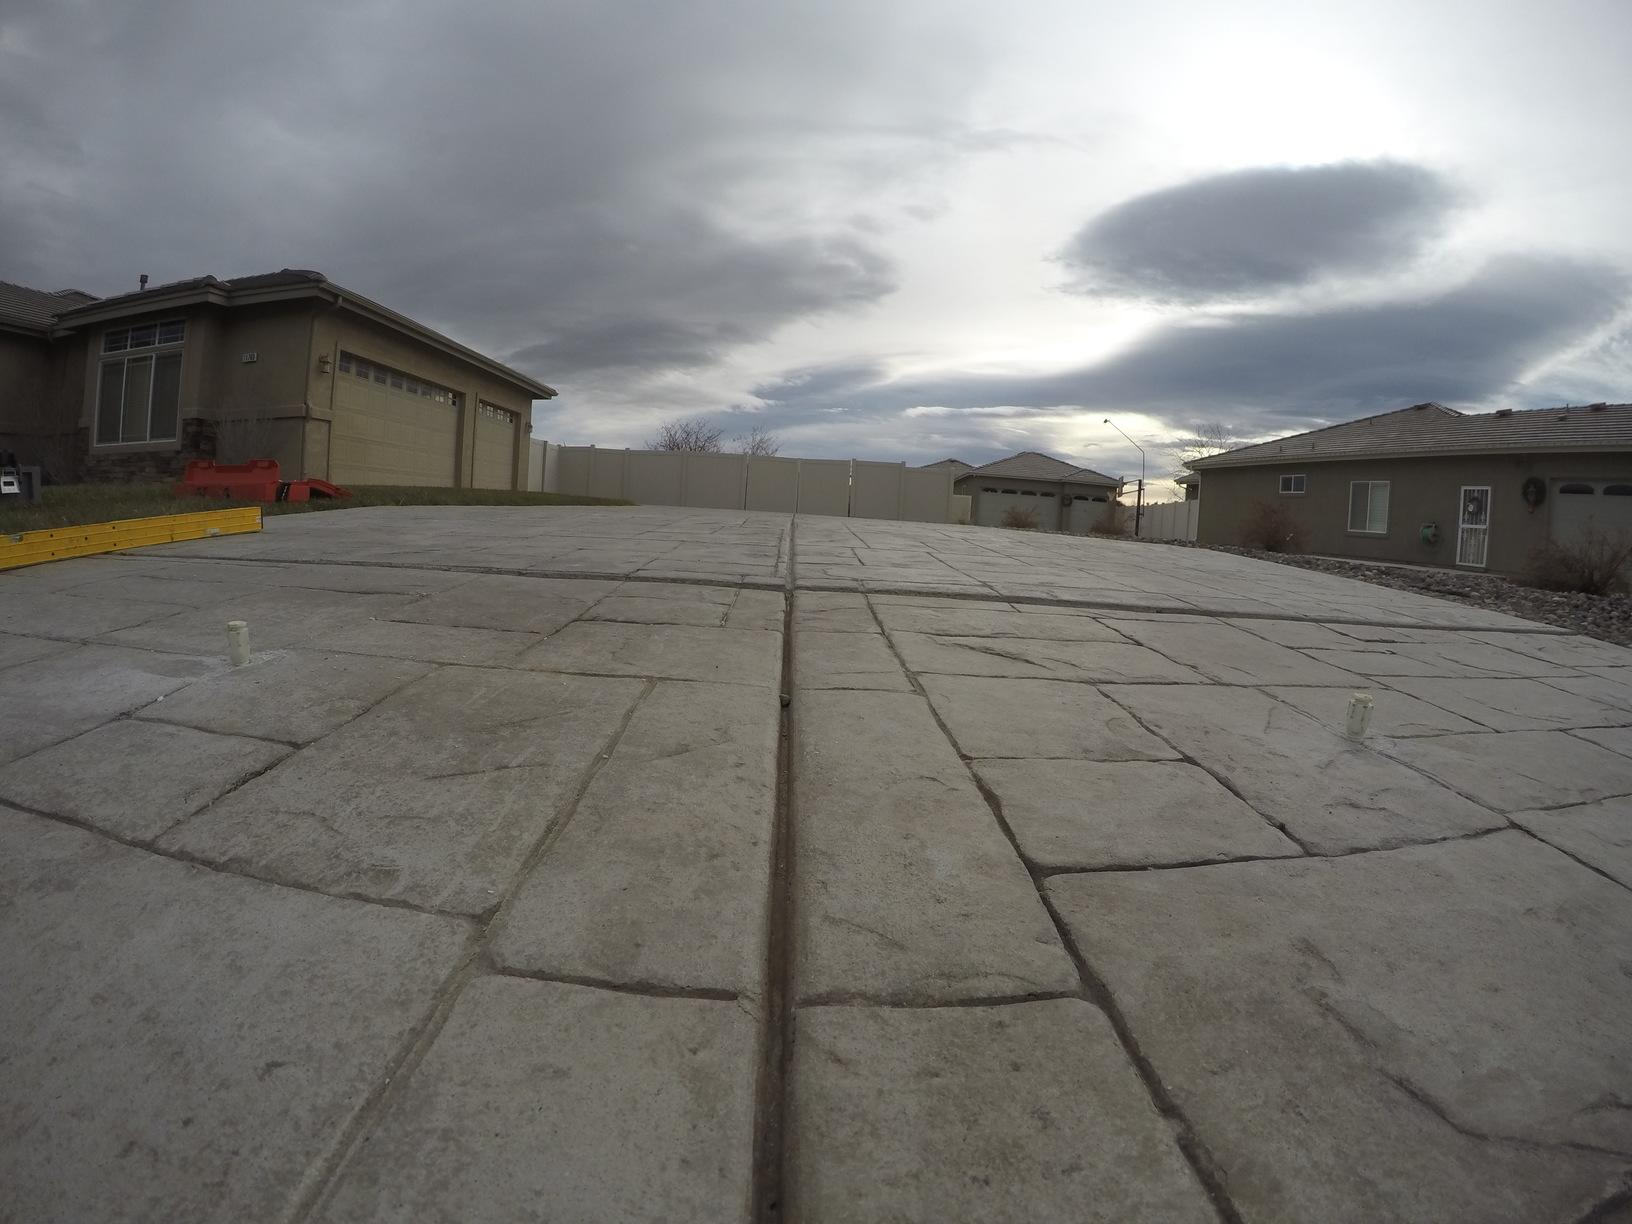 Driveway Repair in Spanish Springs, NV 89441 - After Photo